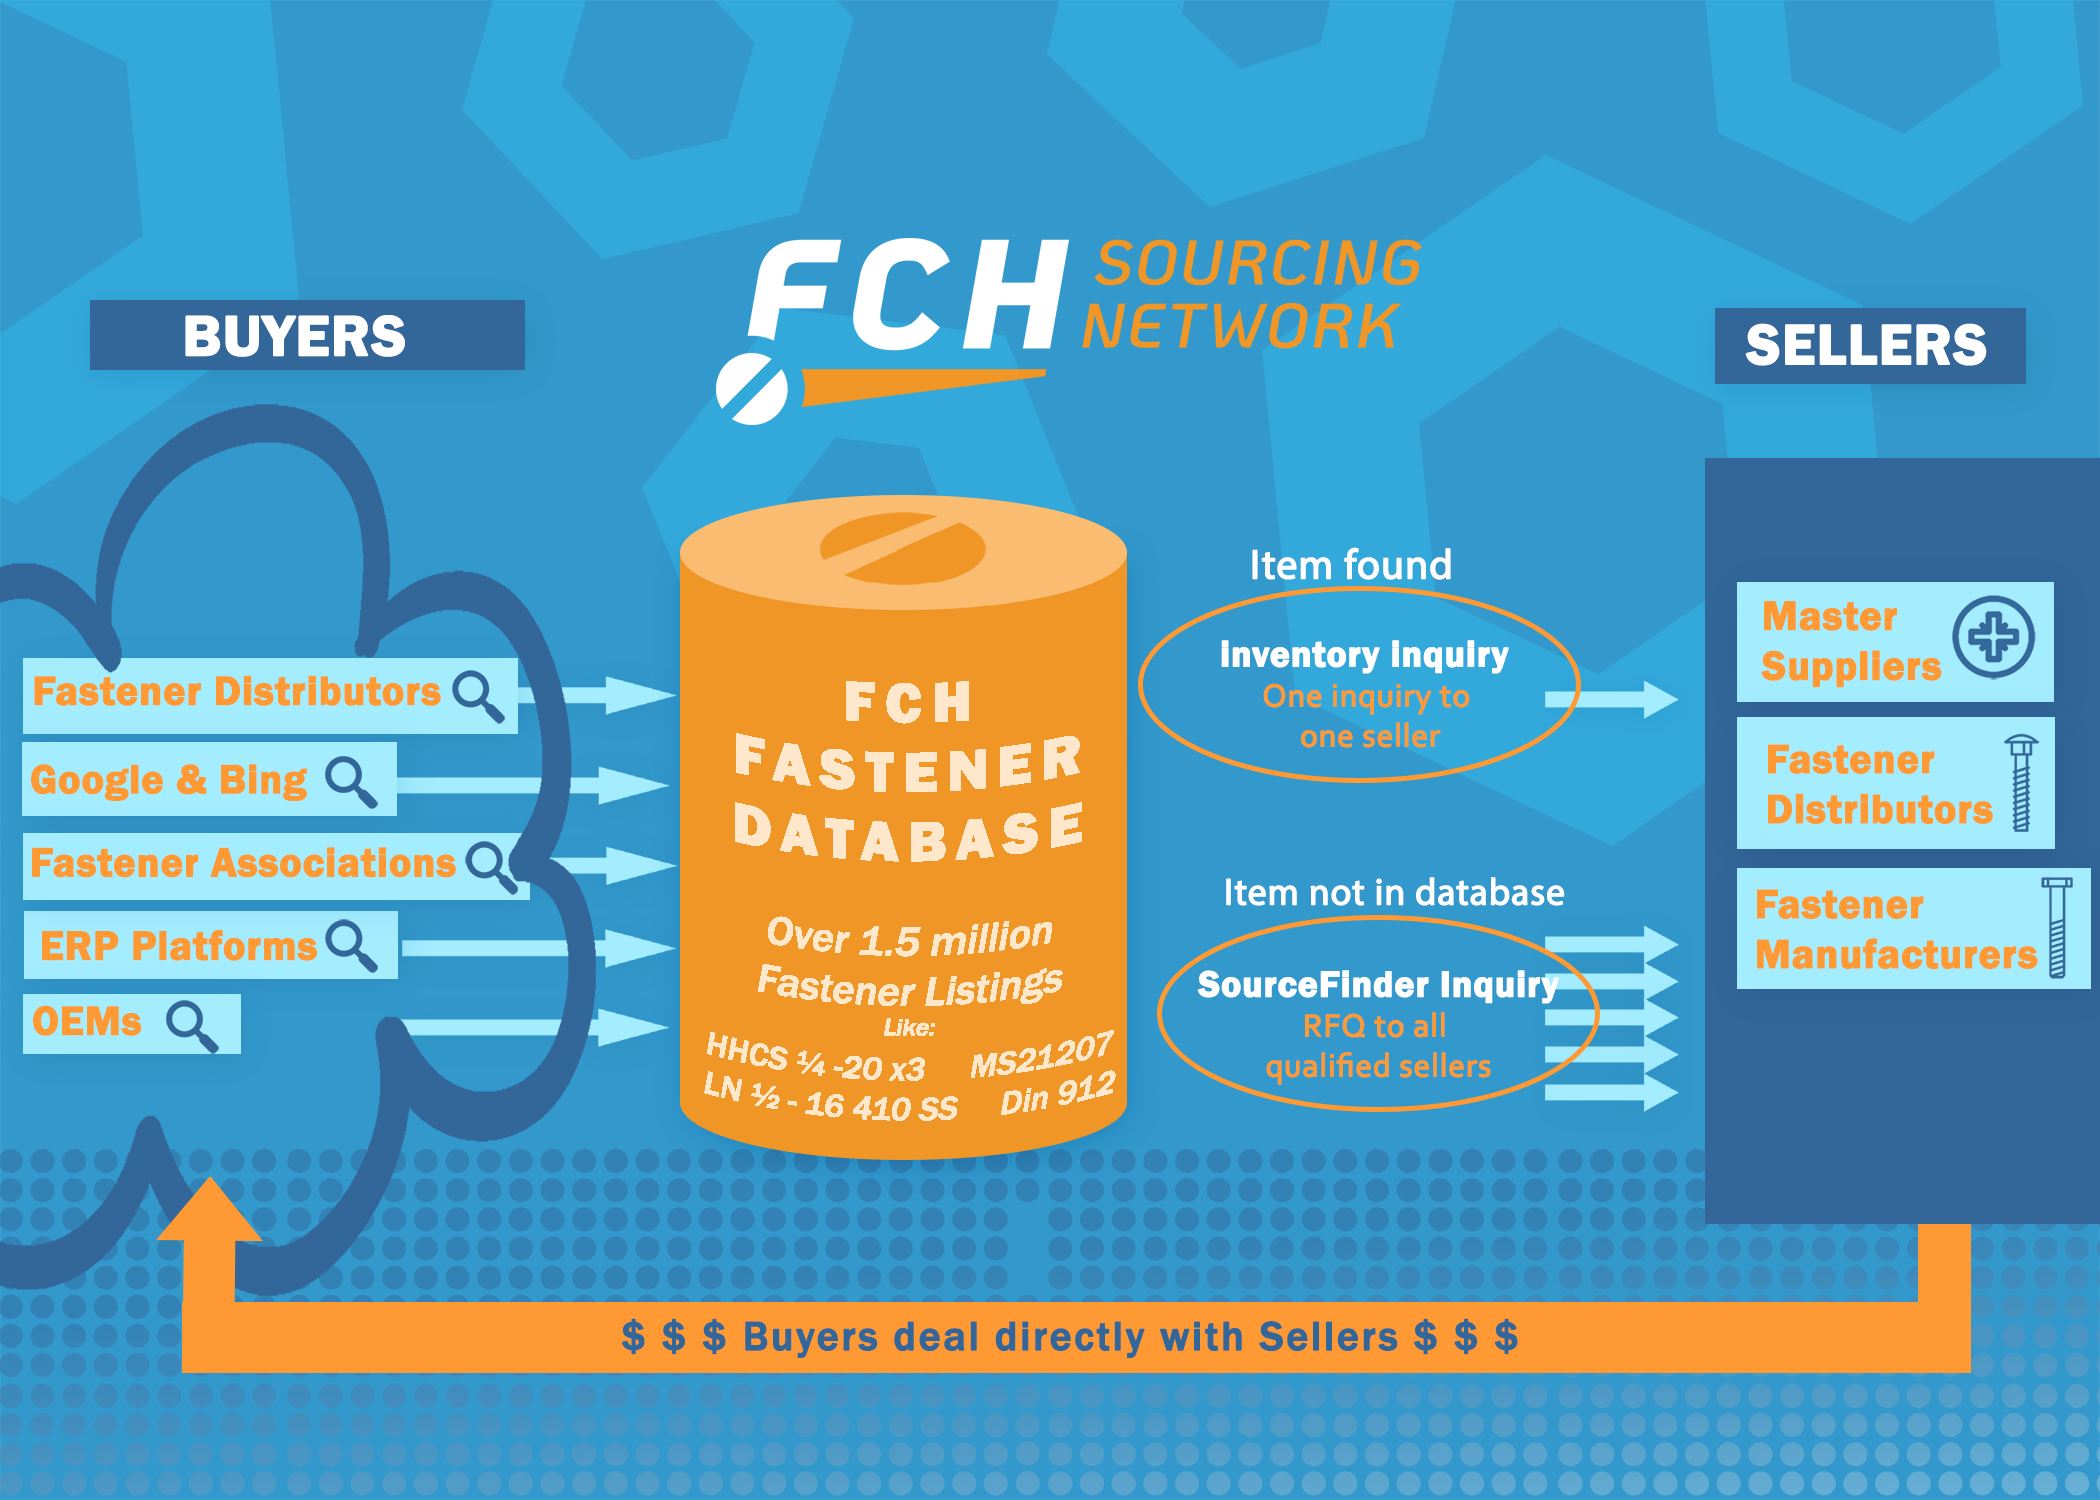 how the FCH Sourcing network works